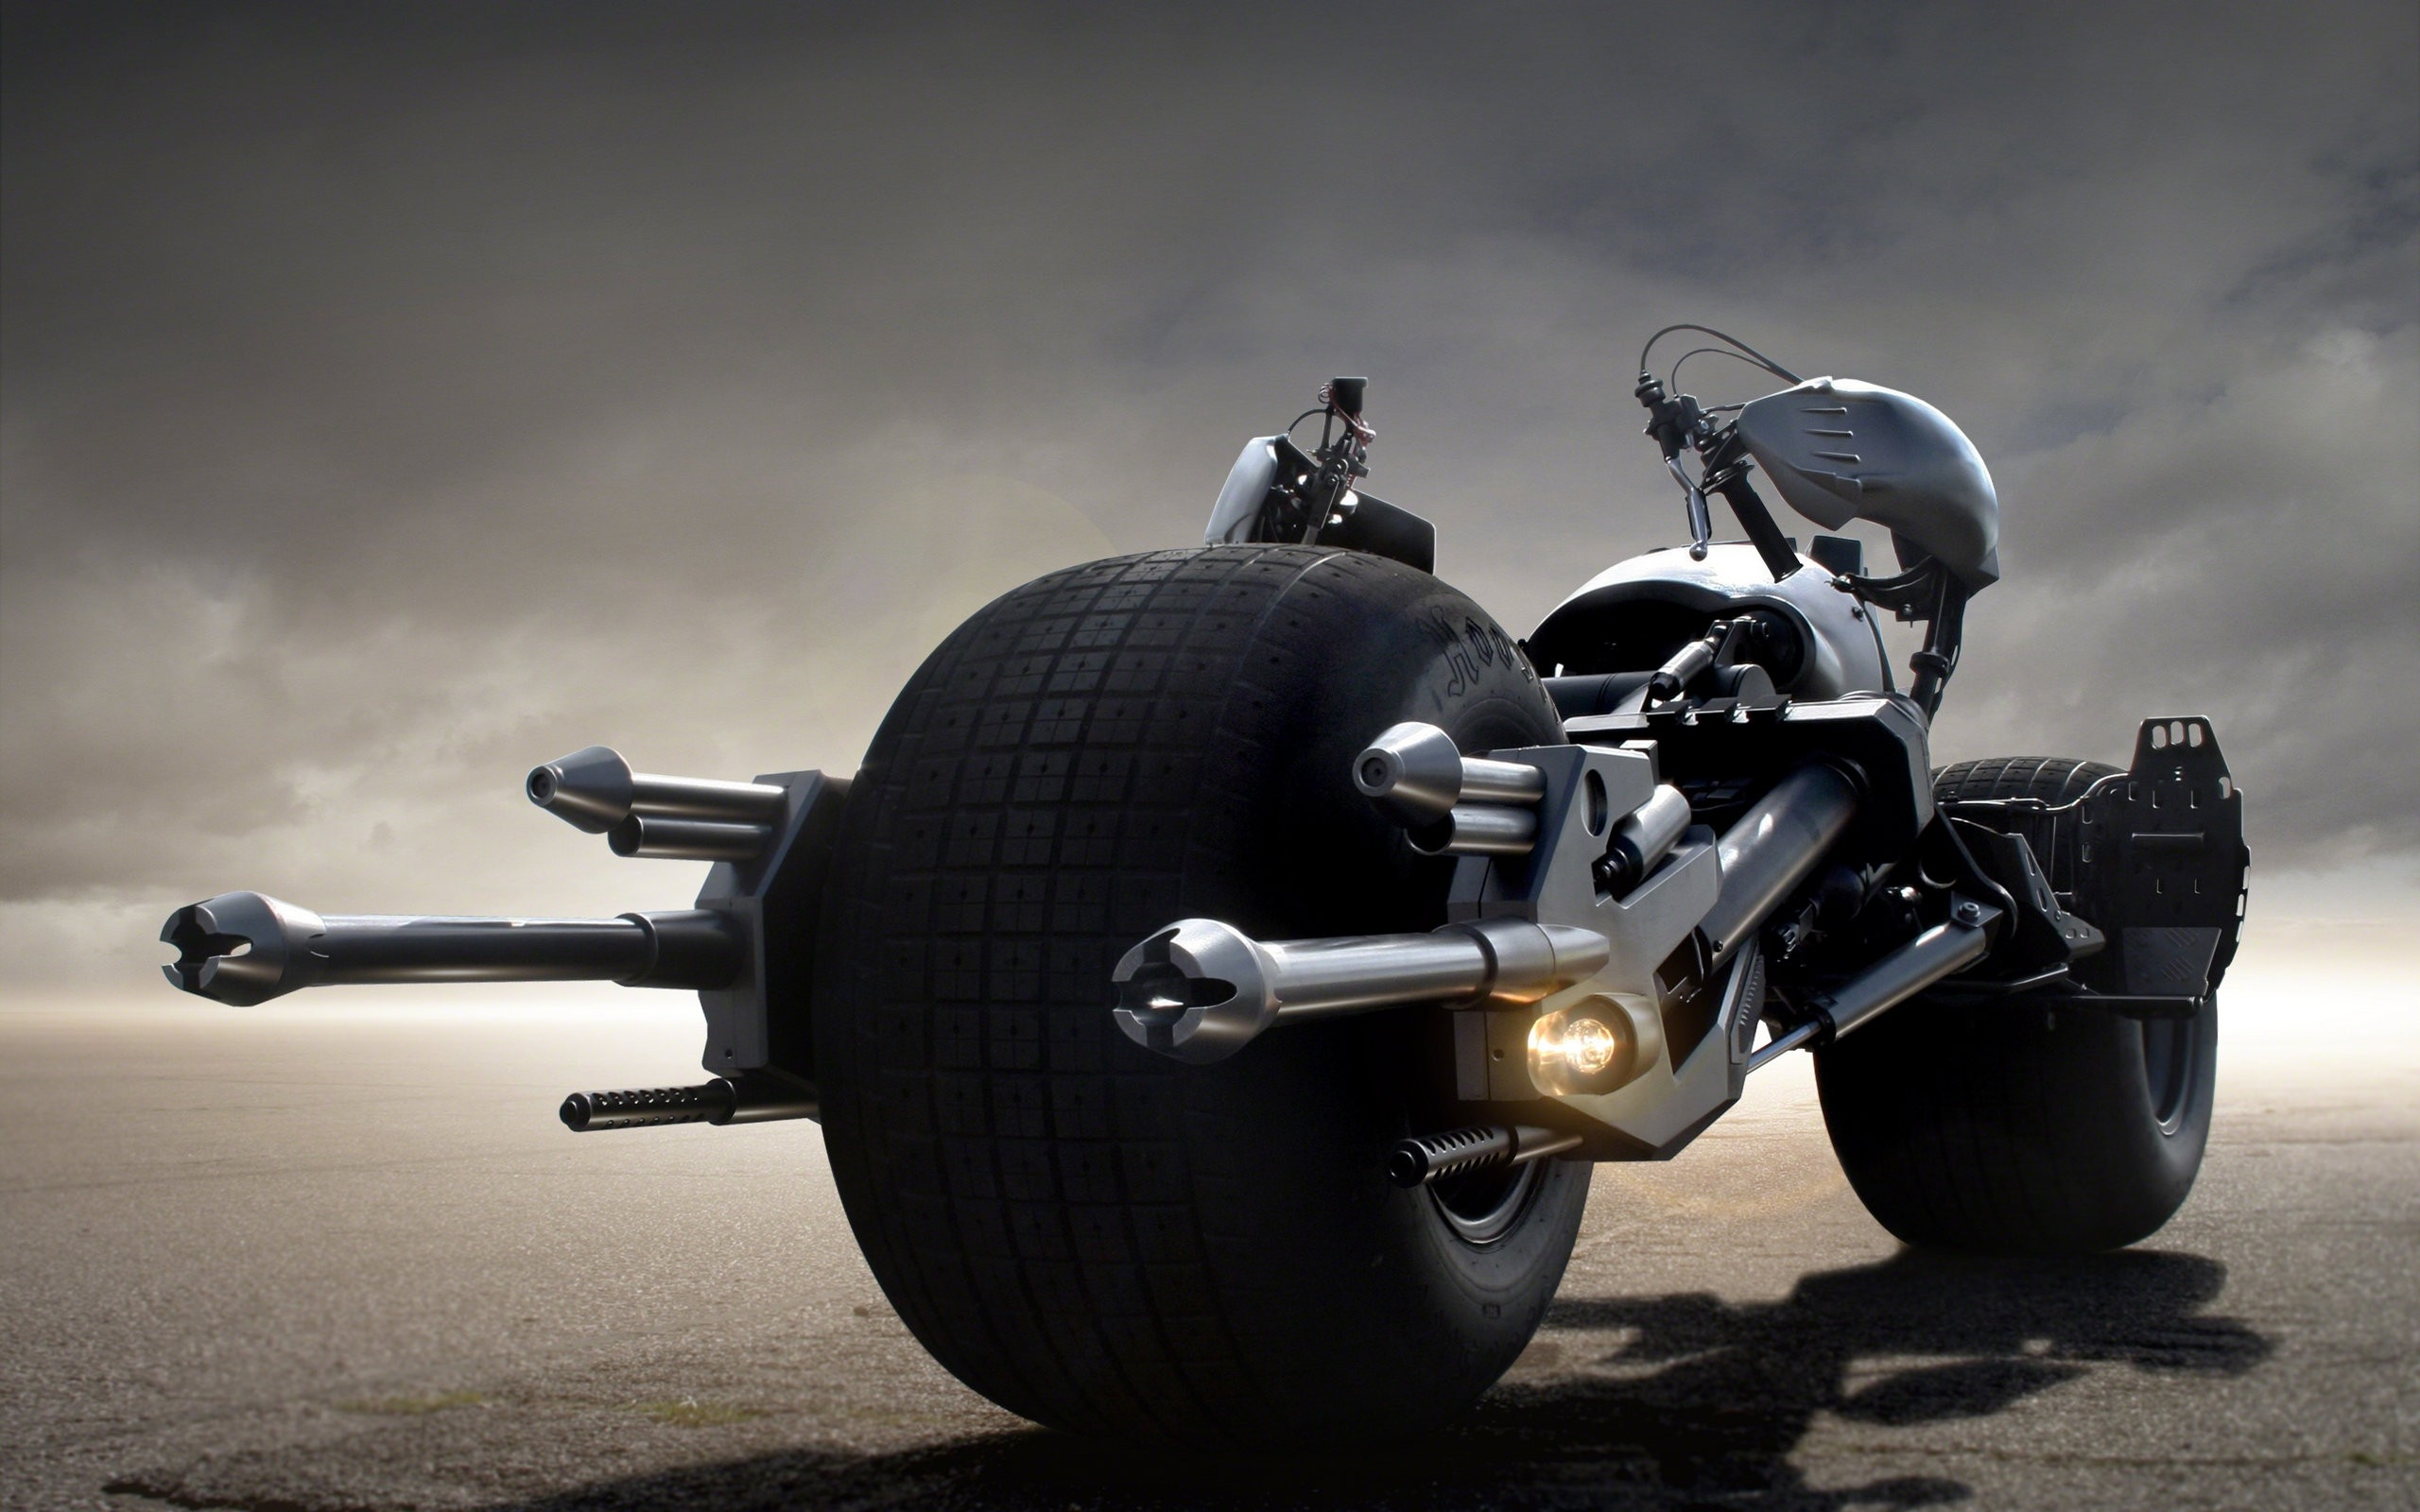 batman bike hd wallpaper free download